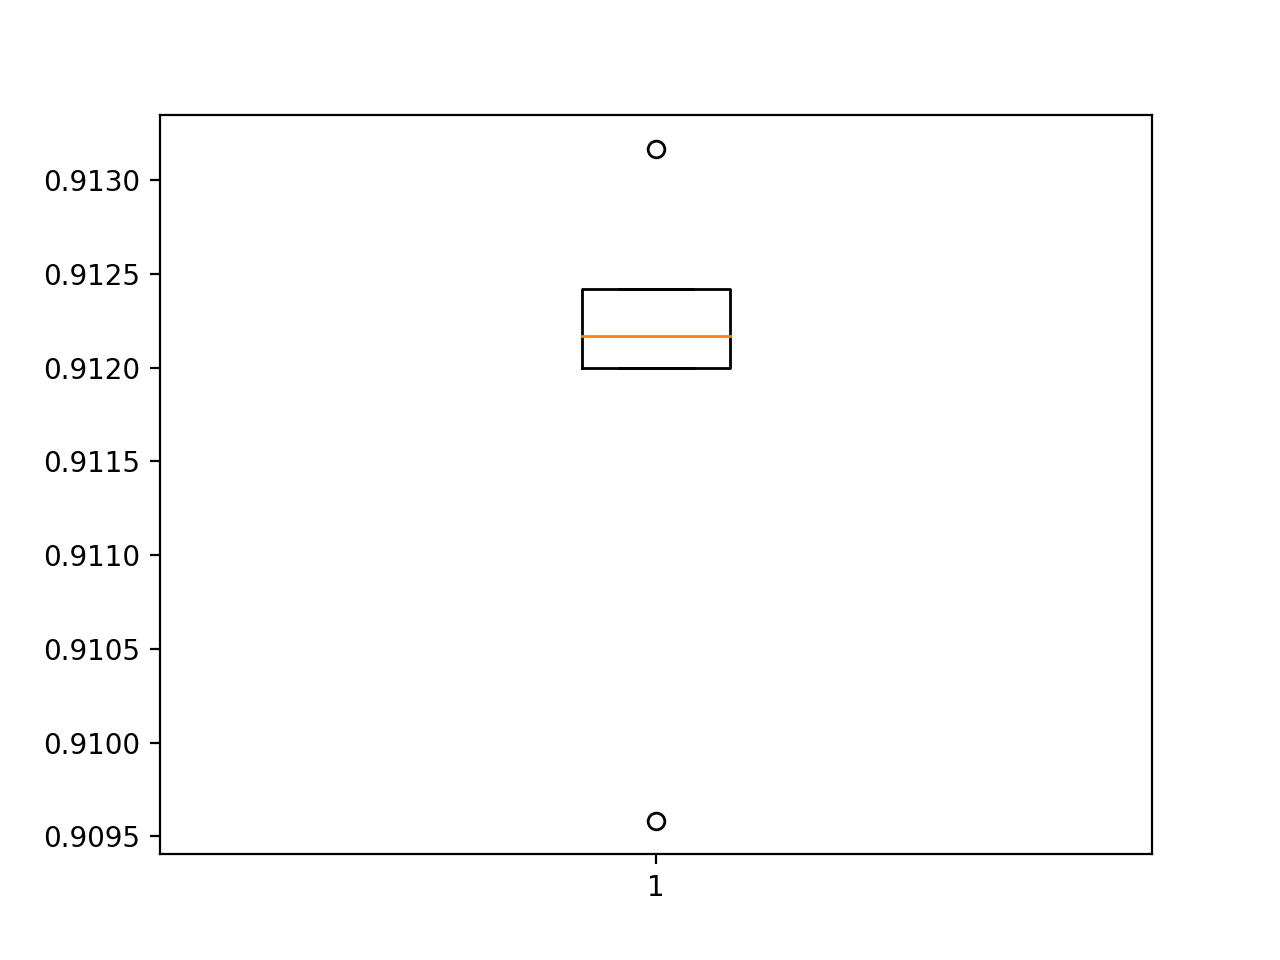 Box-and-Whisker-Plot-of-Accuracy-Scores-for-the-Baseline-Model-on-the-Fashion-MNIST-Dataset-Evaluated-Using-k-Fold-Cross-Validation